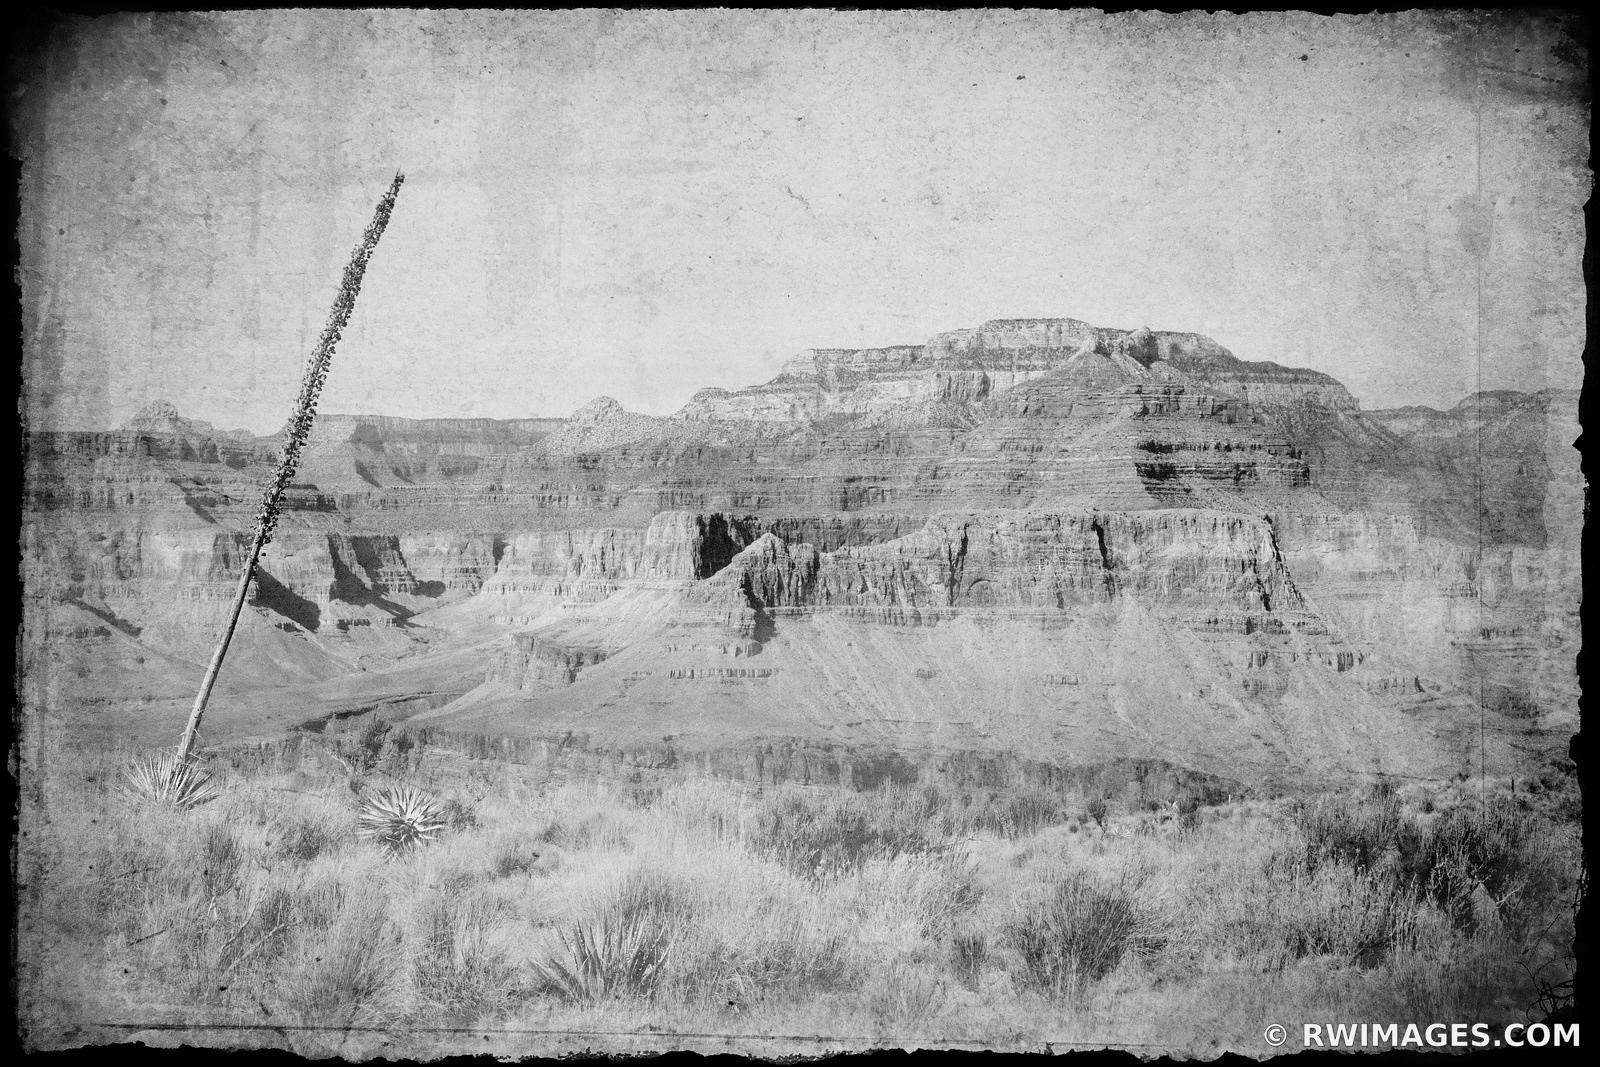 SOUTH KAIBAB TRAIL GRAND CANYON ARIZONA OLD HISTORIC VINTAGE BLACK AND WHITE